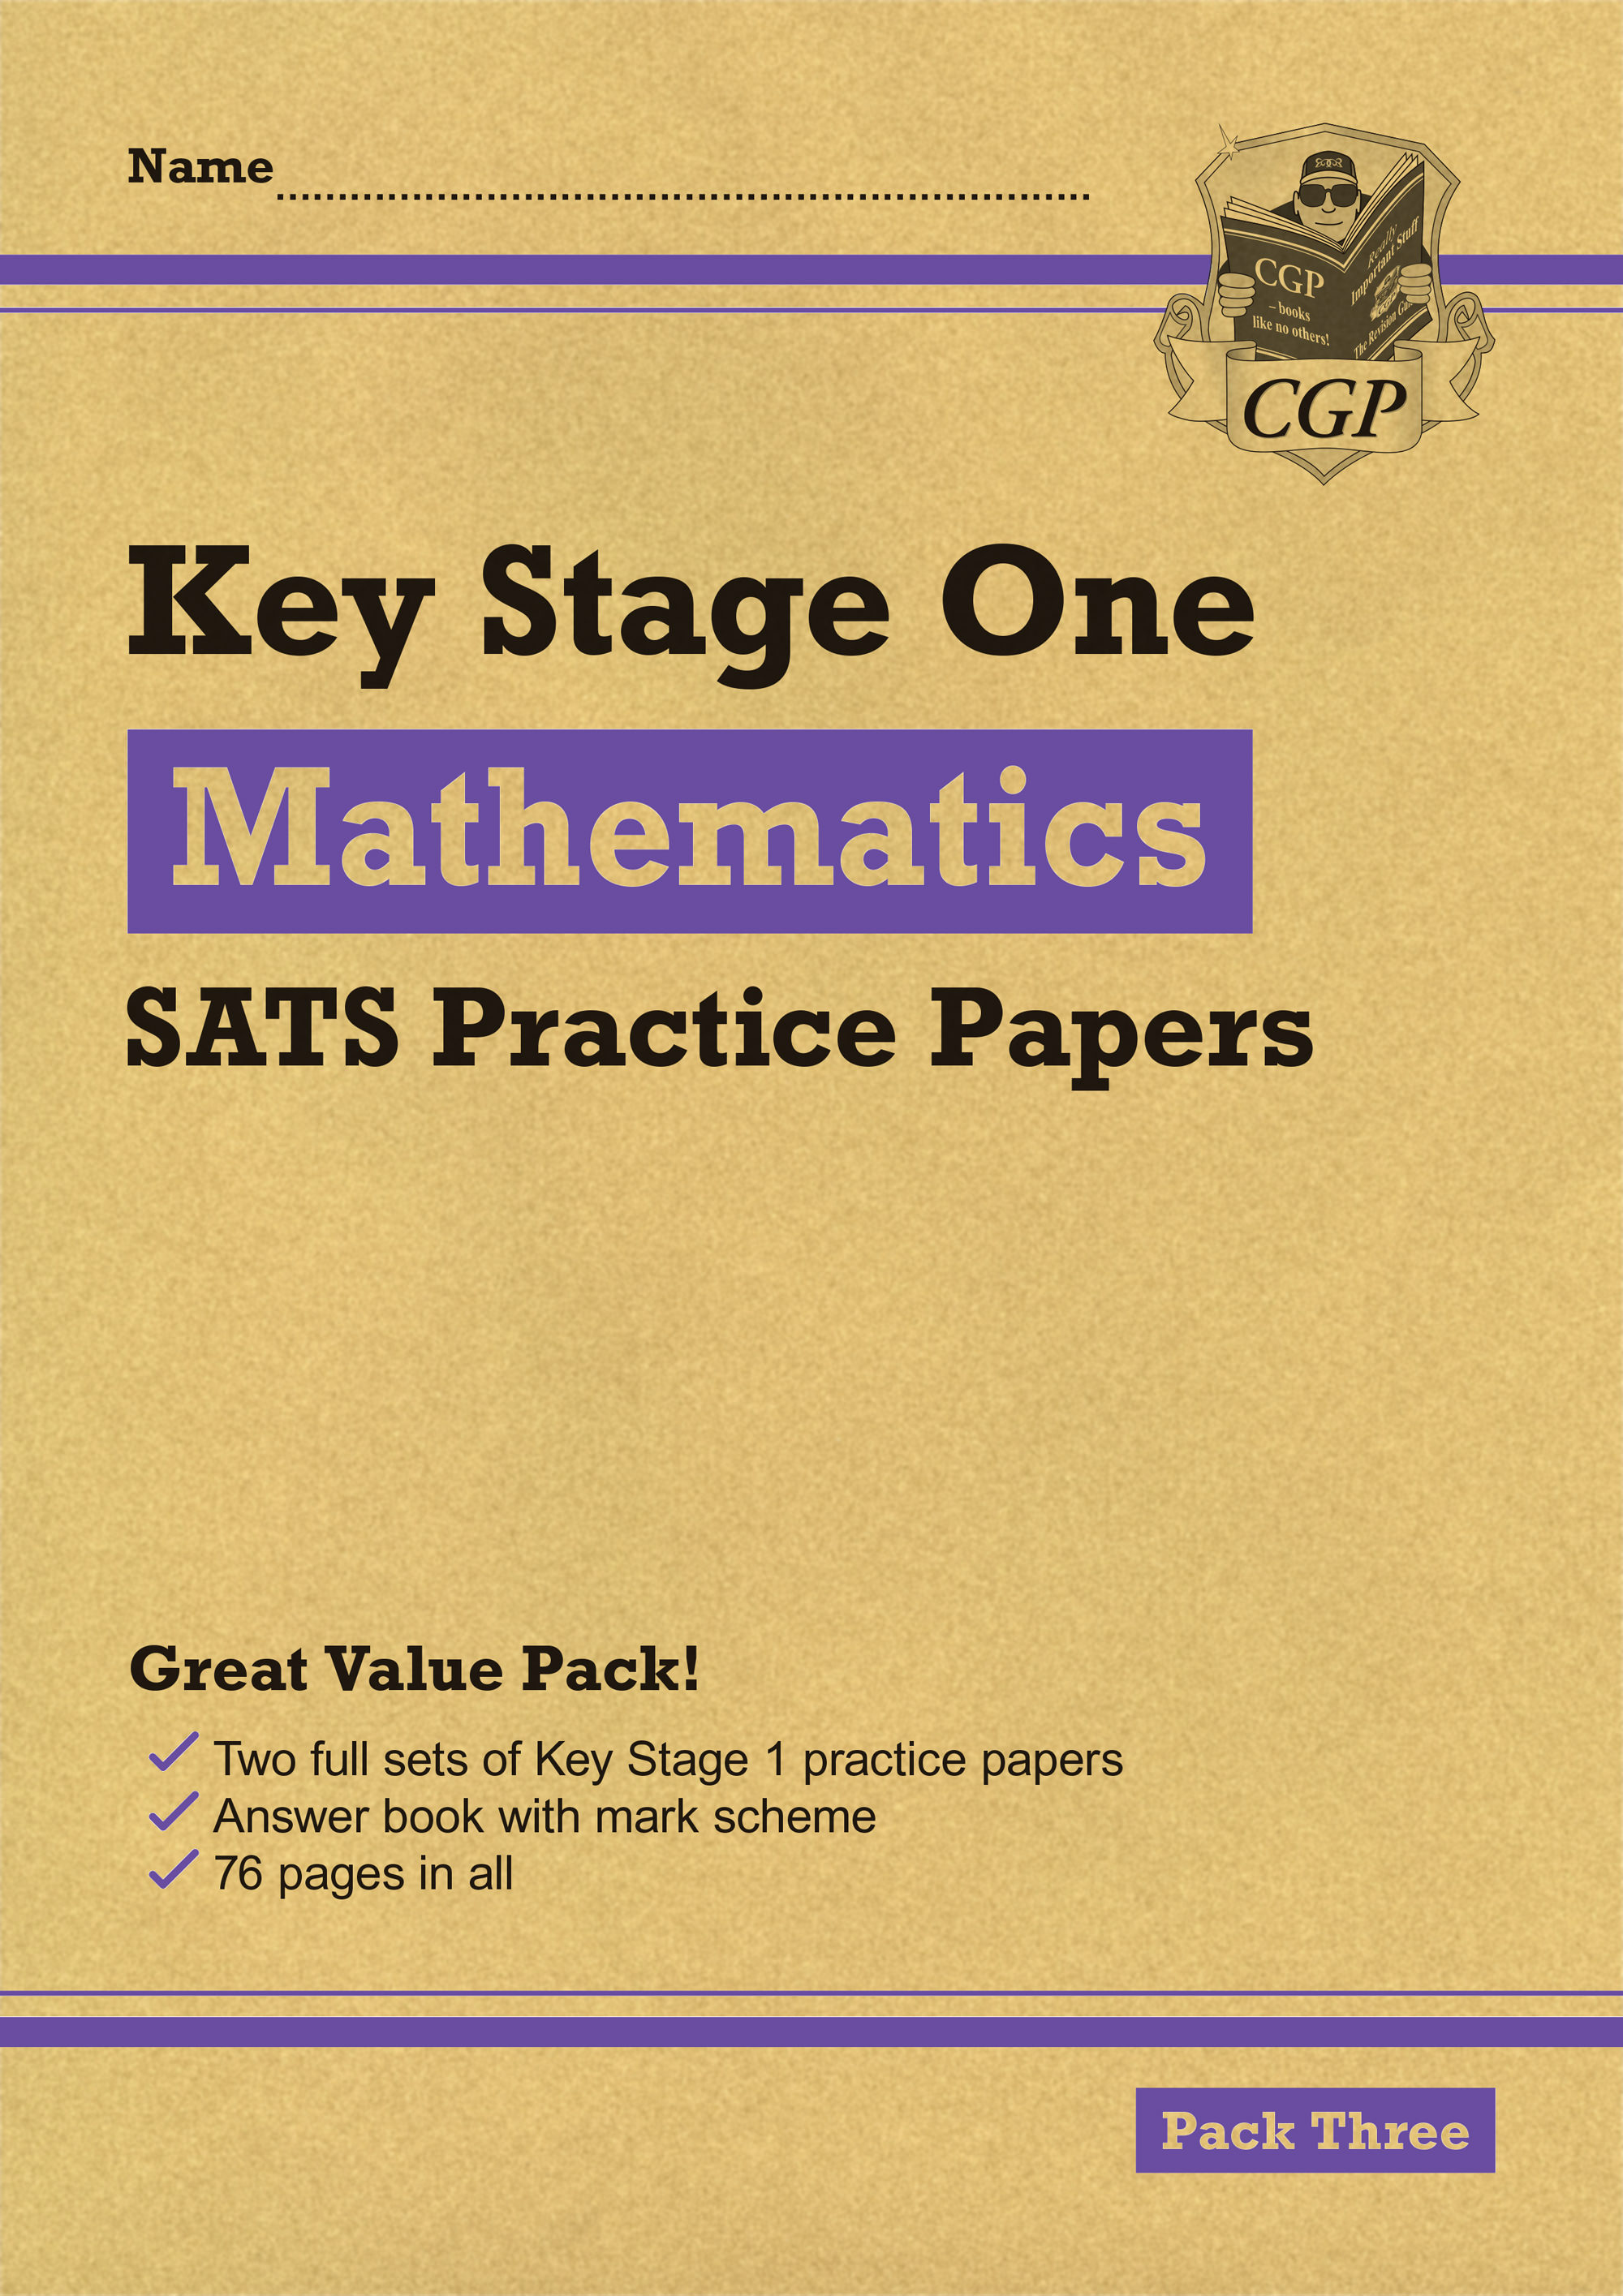 MHPP13 - New KS1 Maths SATS Practice Papers: Pack 3 (for the 2019 tests)